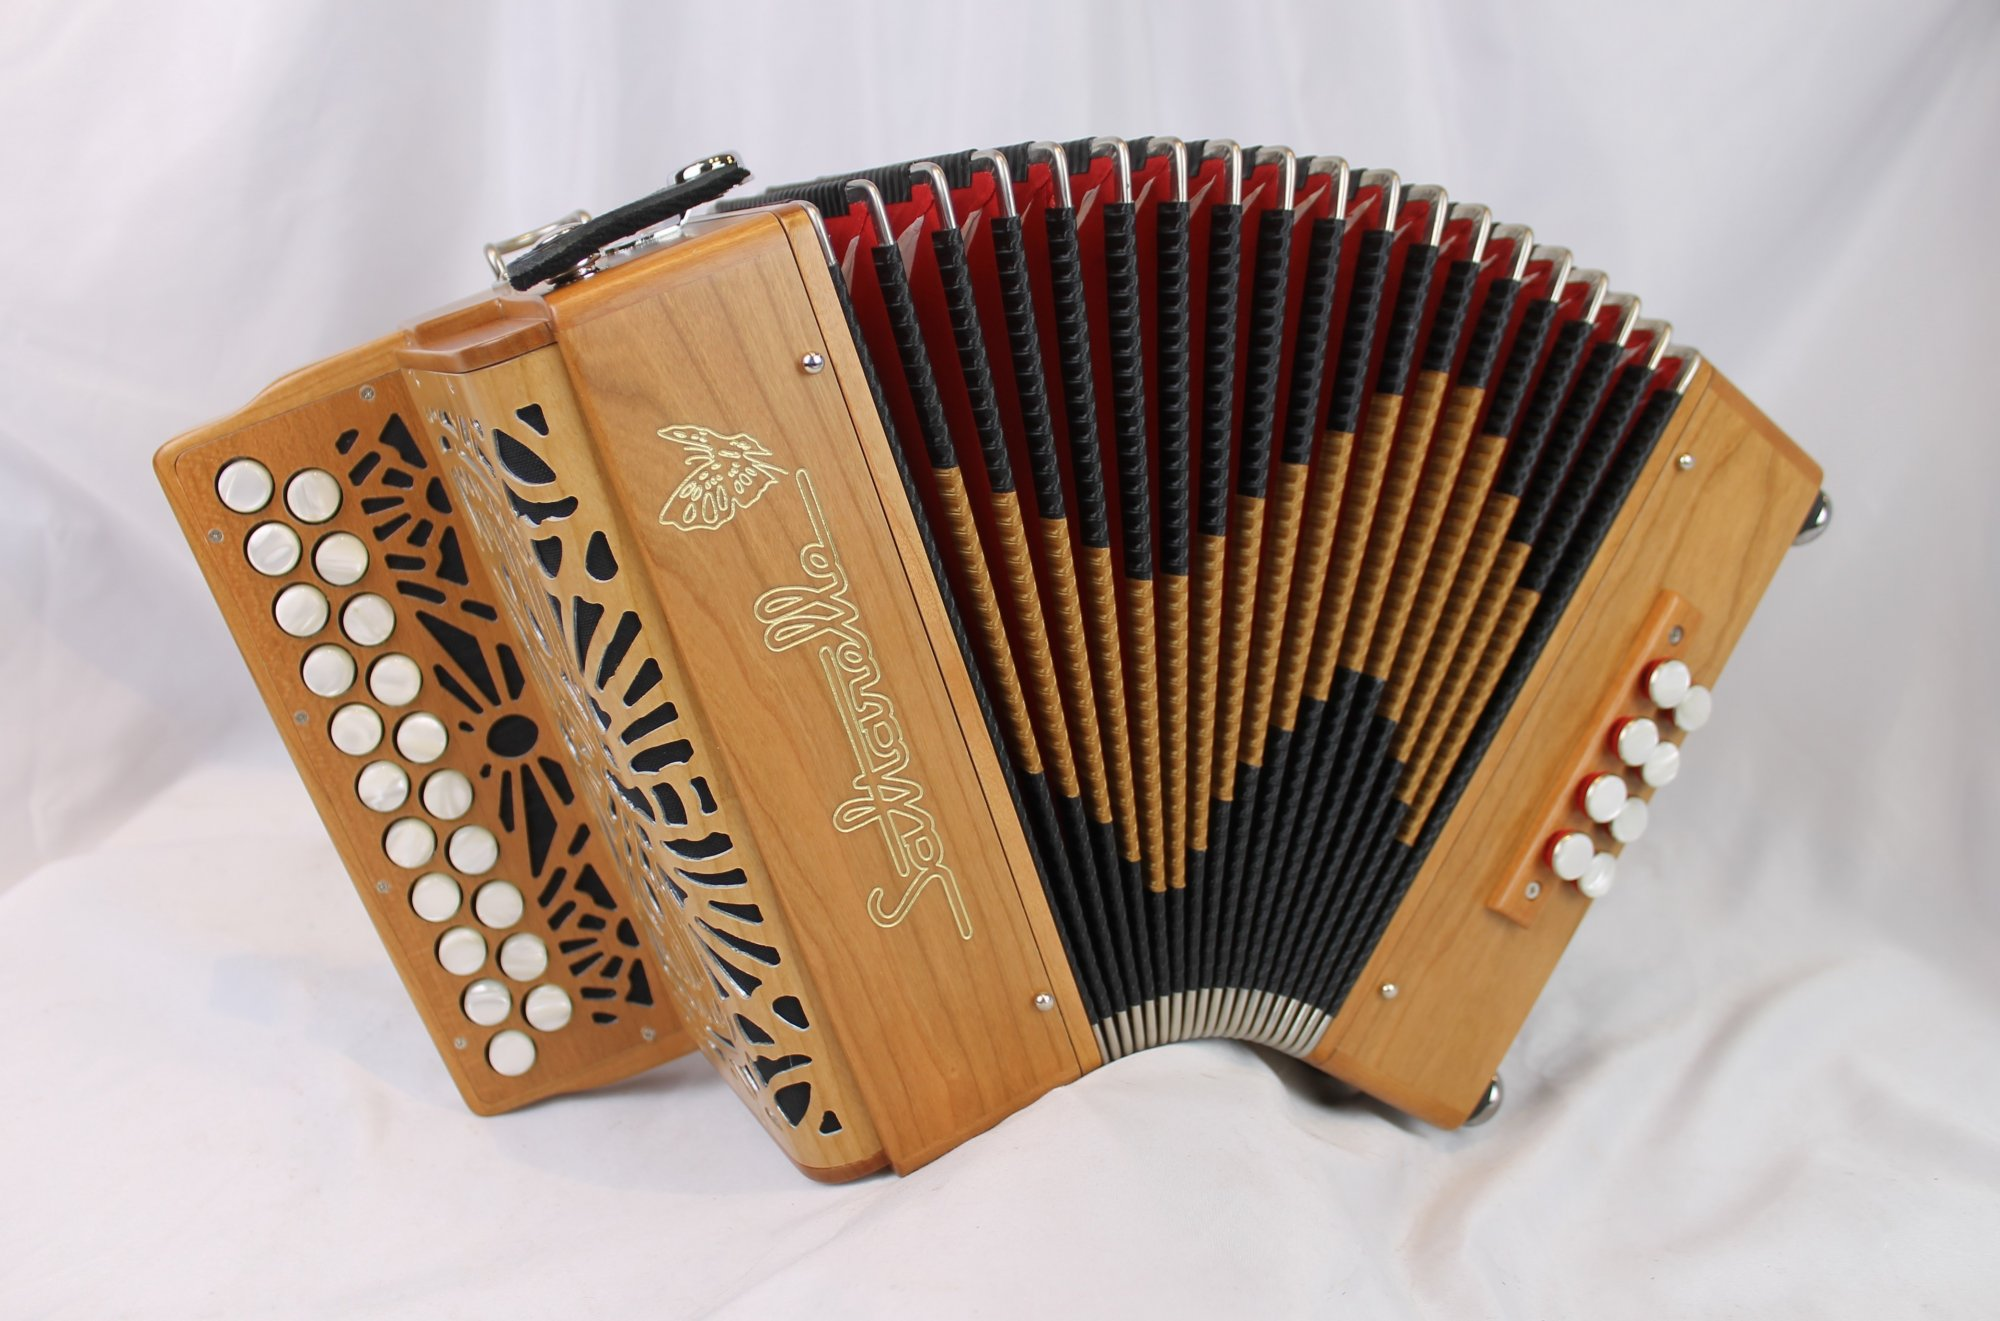 NEW Cherry Saltarelle Aether II Diatonic Button Accordion B C MM 21 8